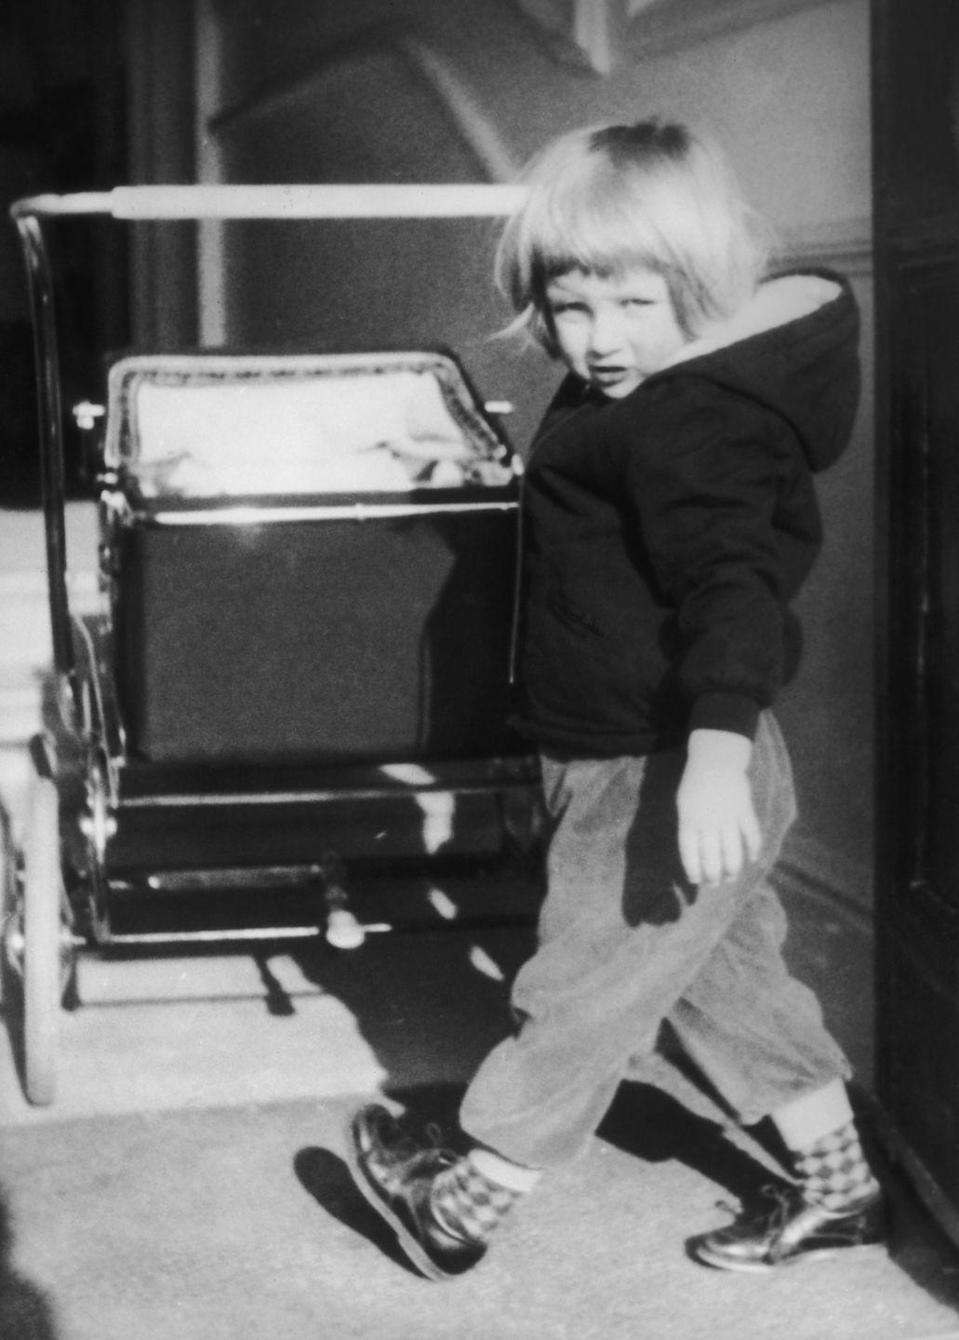 "<p>A young Diana Spencer pushes a stroller at Park House, Sandringham in Norfolk. In 1983, the Queen turned Park House into a <a href=""https://www.sandringhamestate.co.uk/holiday-cottages-sandringham/park-house-hotel/"" rel=""nofollow noopener"" target=""_blank"" data-ylk=""slk:hotel"" class=""link rapid-noclick-resp"">hotel</a> specifically designed to accommodate disabled people and their families. </p>"